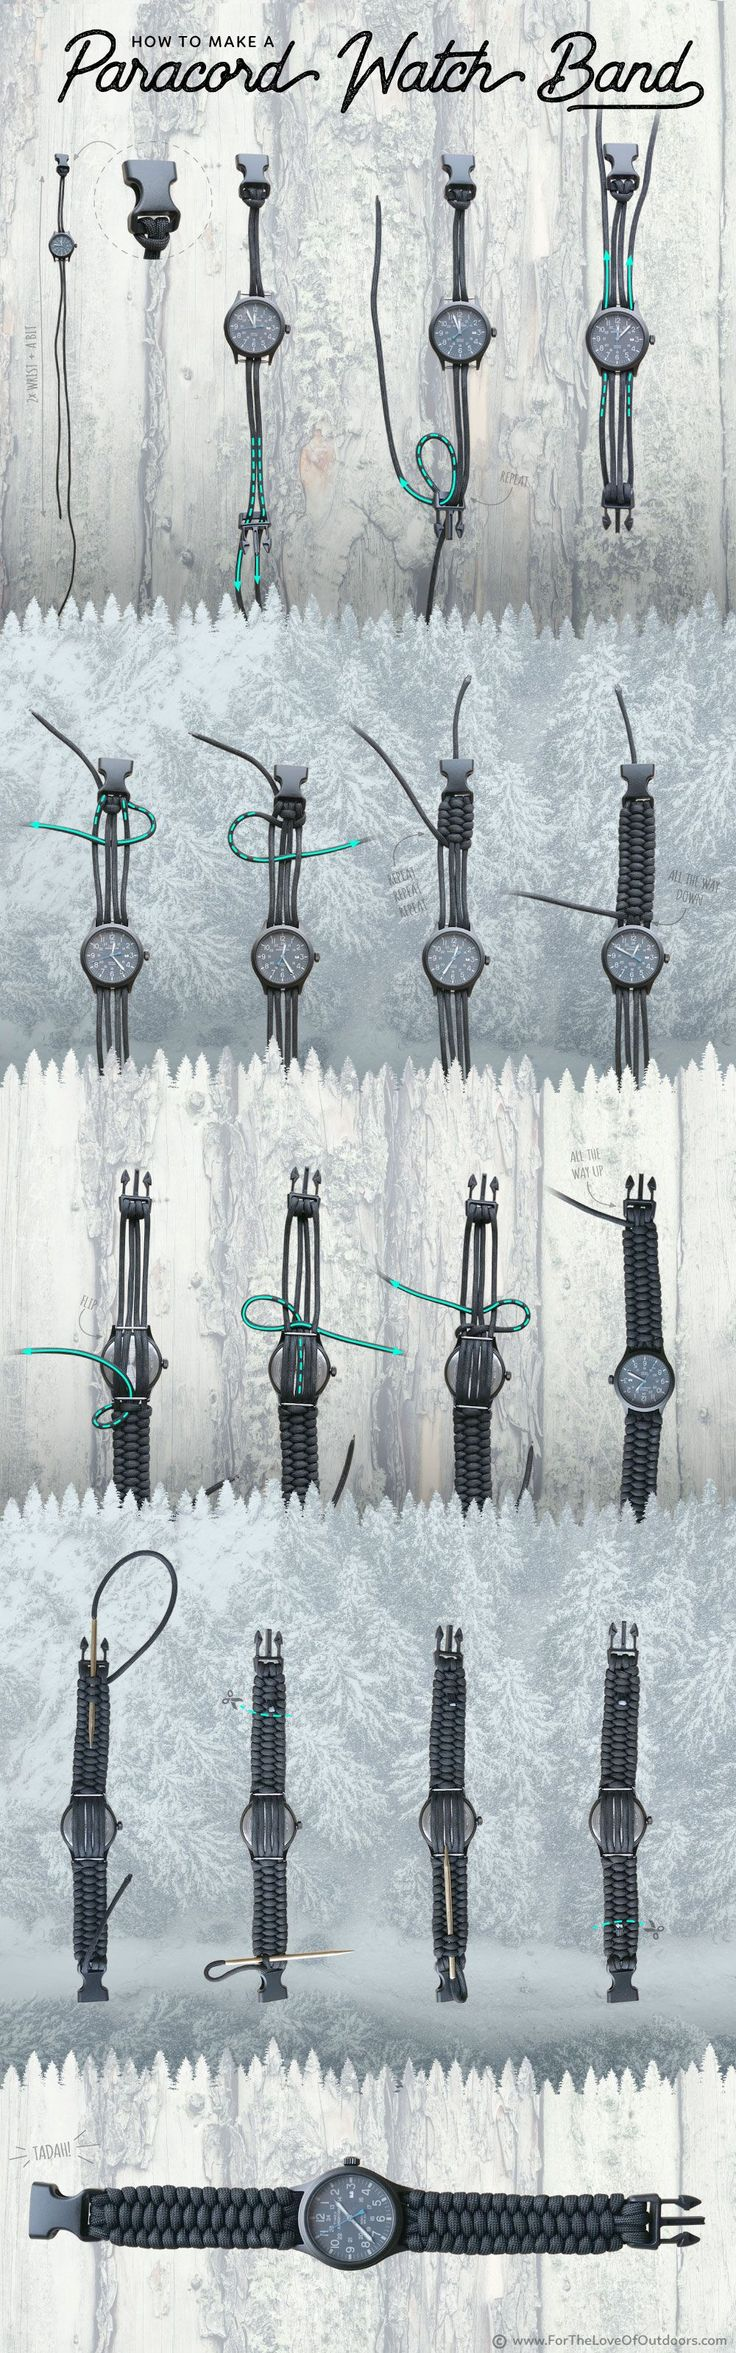 Paracord Project: How to make a paracord watch band - a beginner friendly infographic tutorial